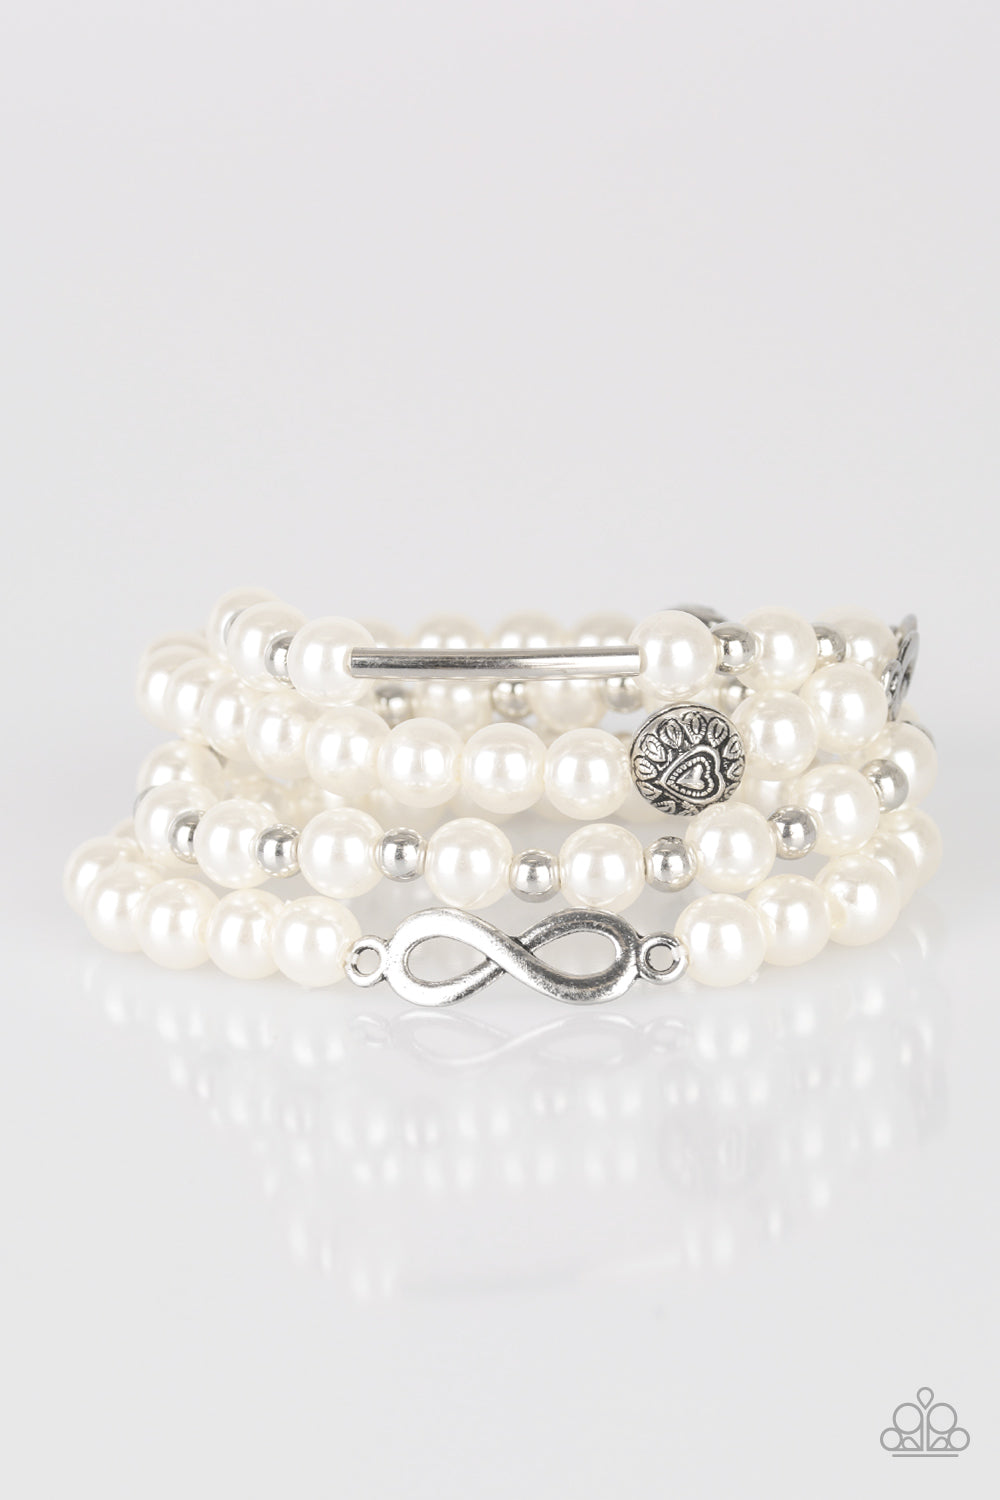 Paparazzi Accessories - Limitless Luxury - White Bracelets - JMJ Jewelry Collection